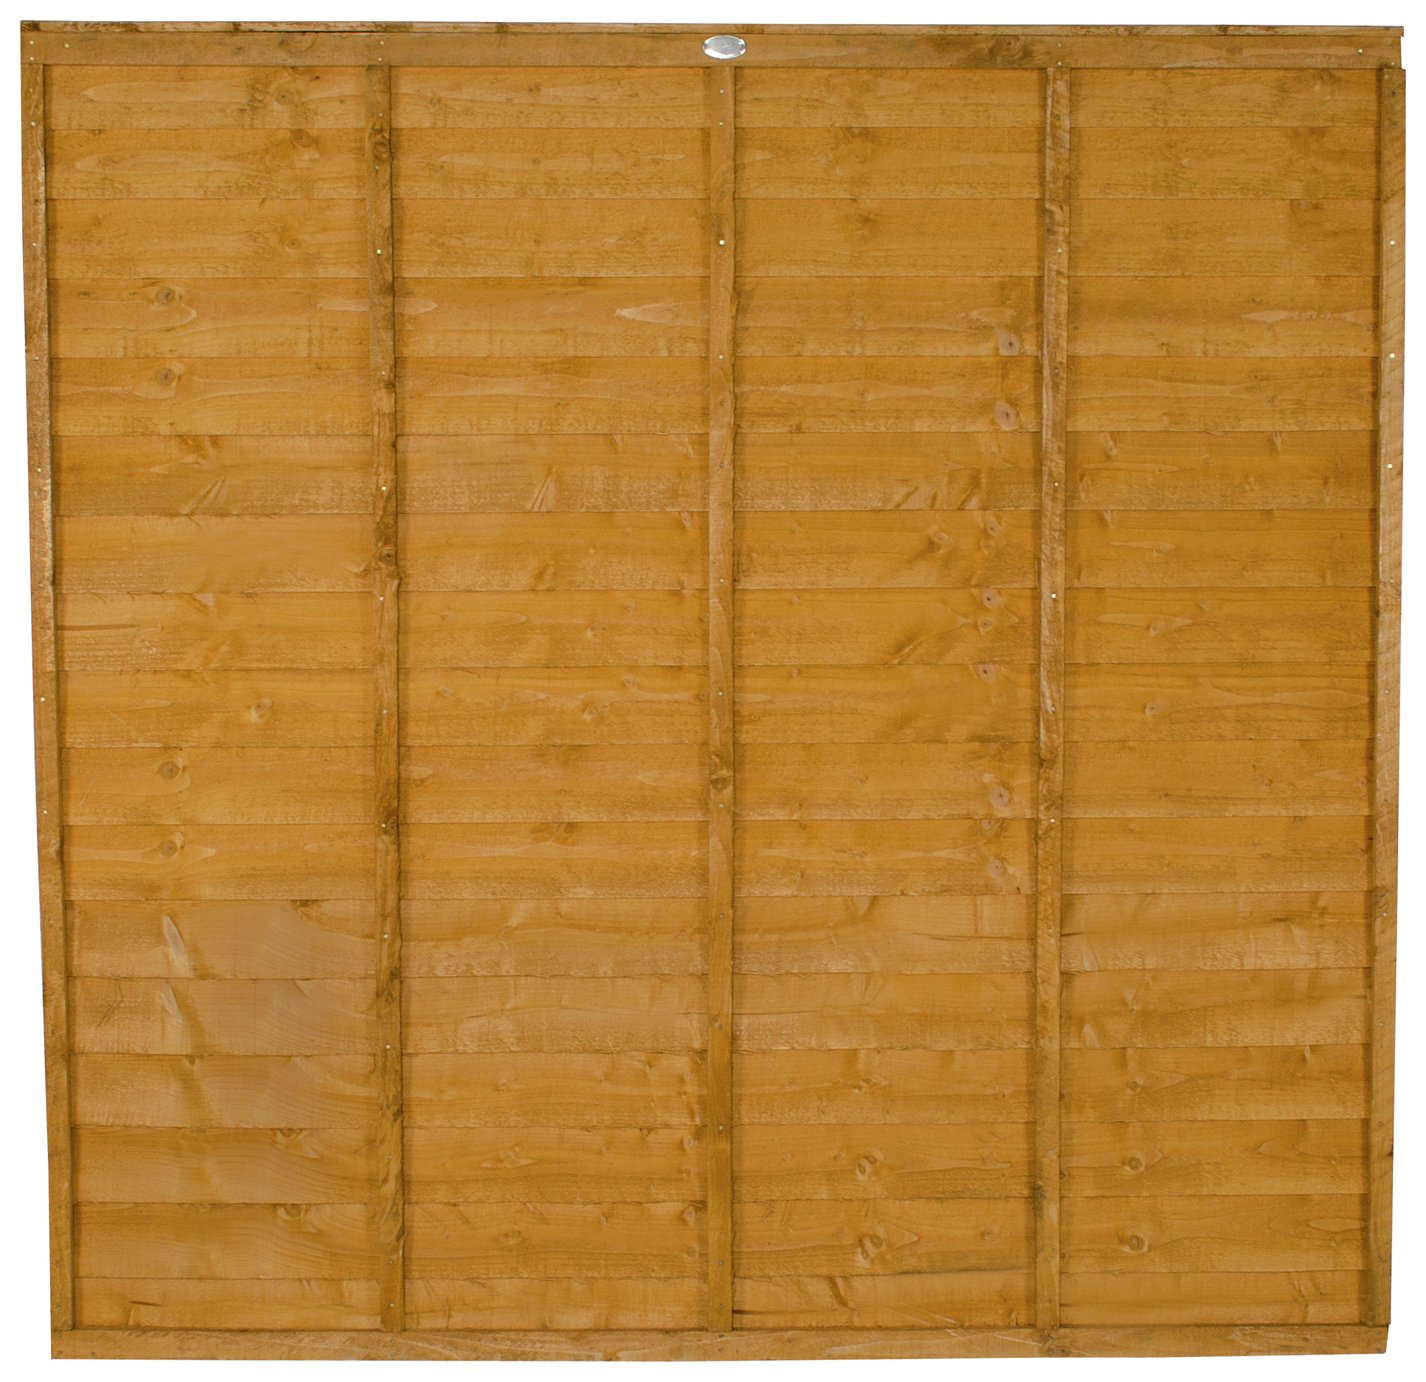 Forest 6ft (1.83m) Premier Lap Fence Panel - Pack of 4